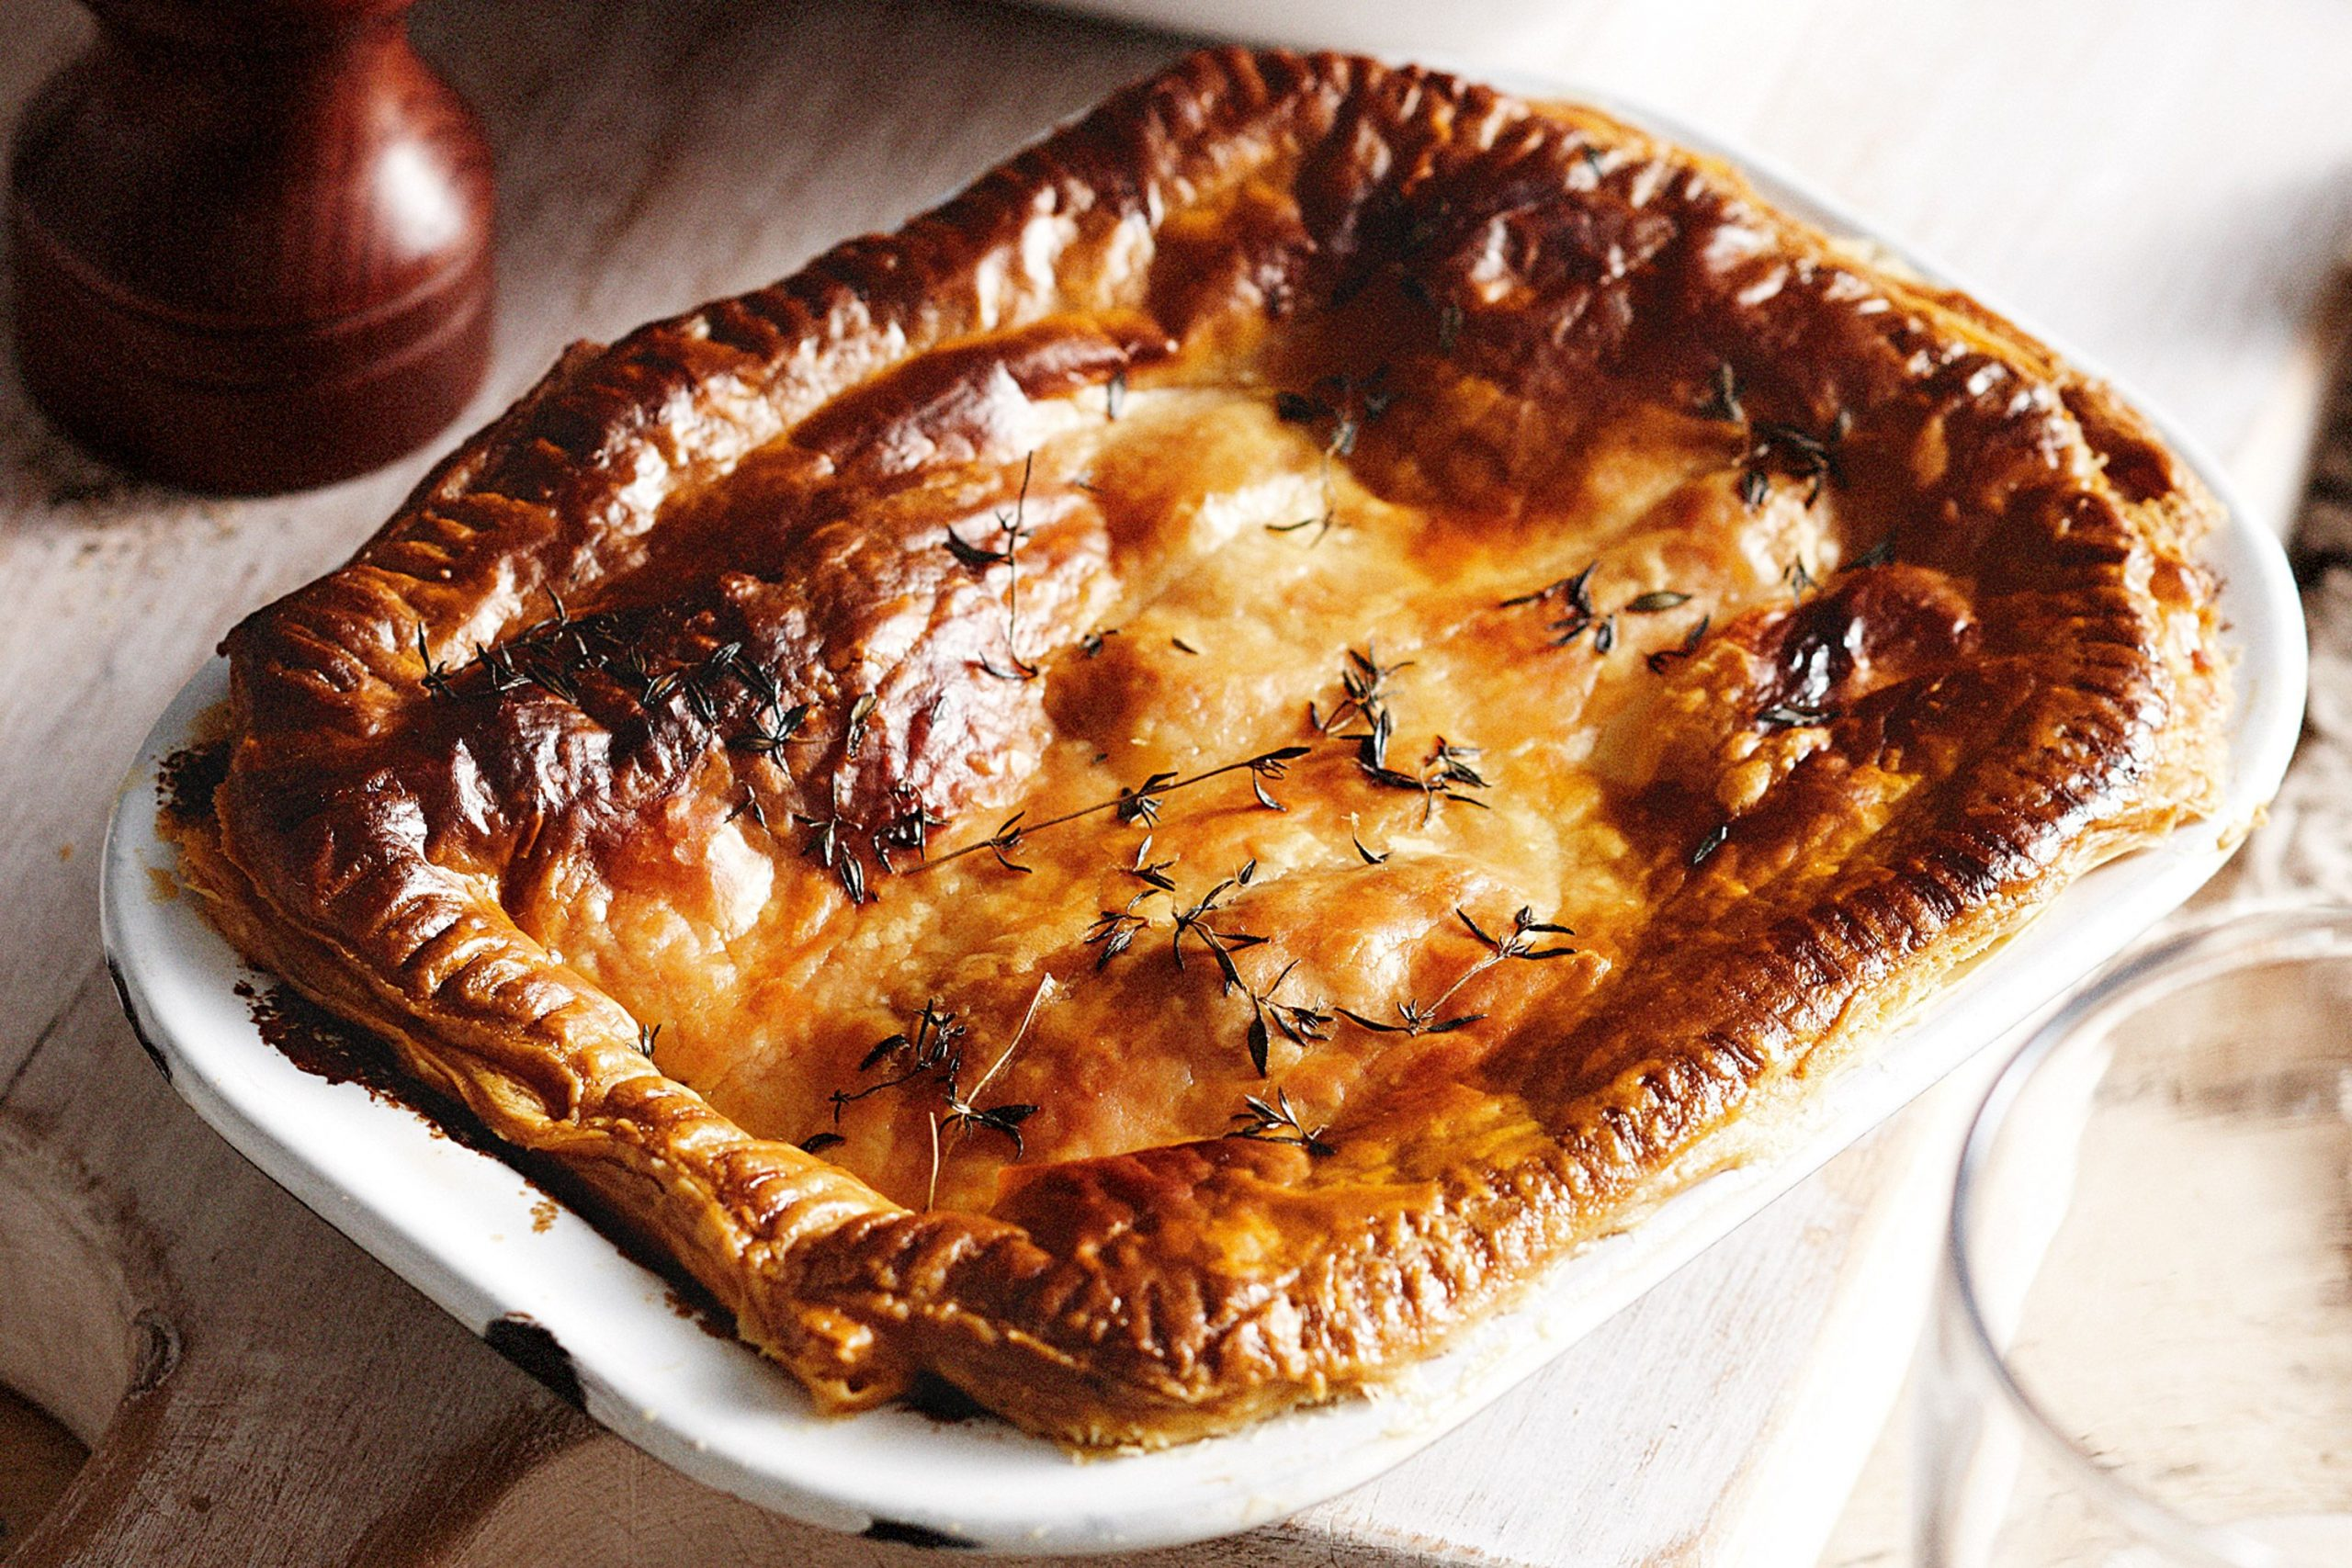 Steak And Kidney Pie - British meals